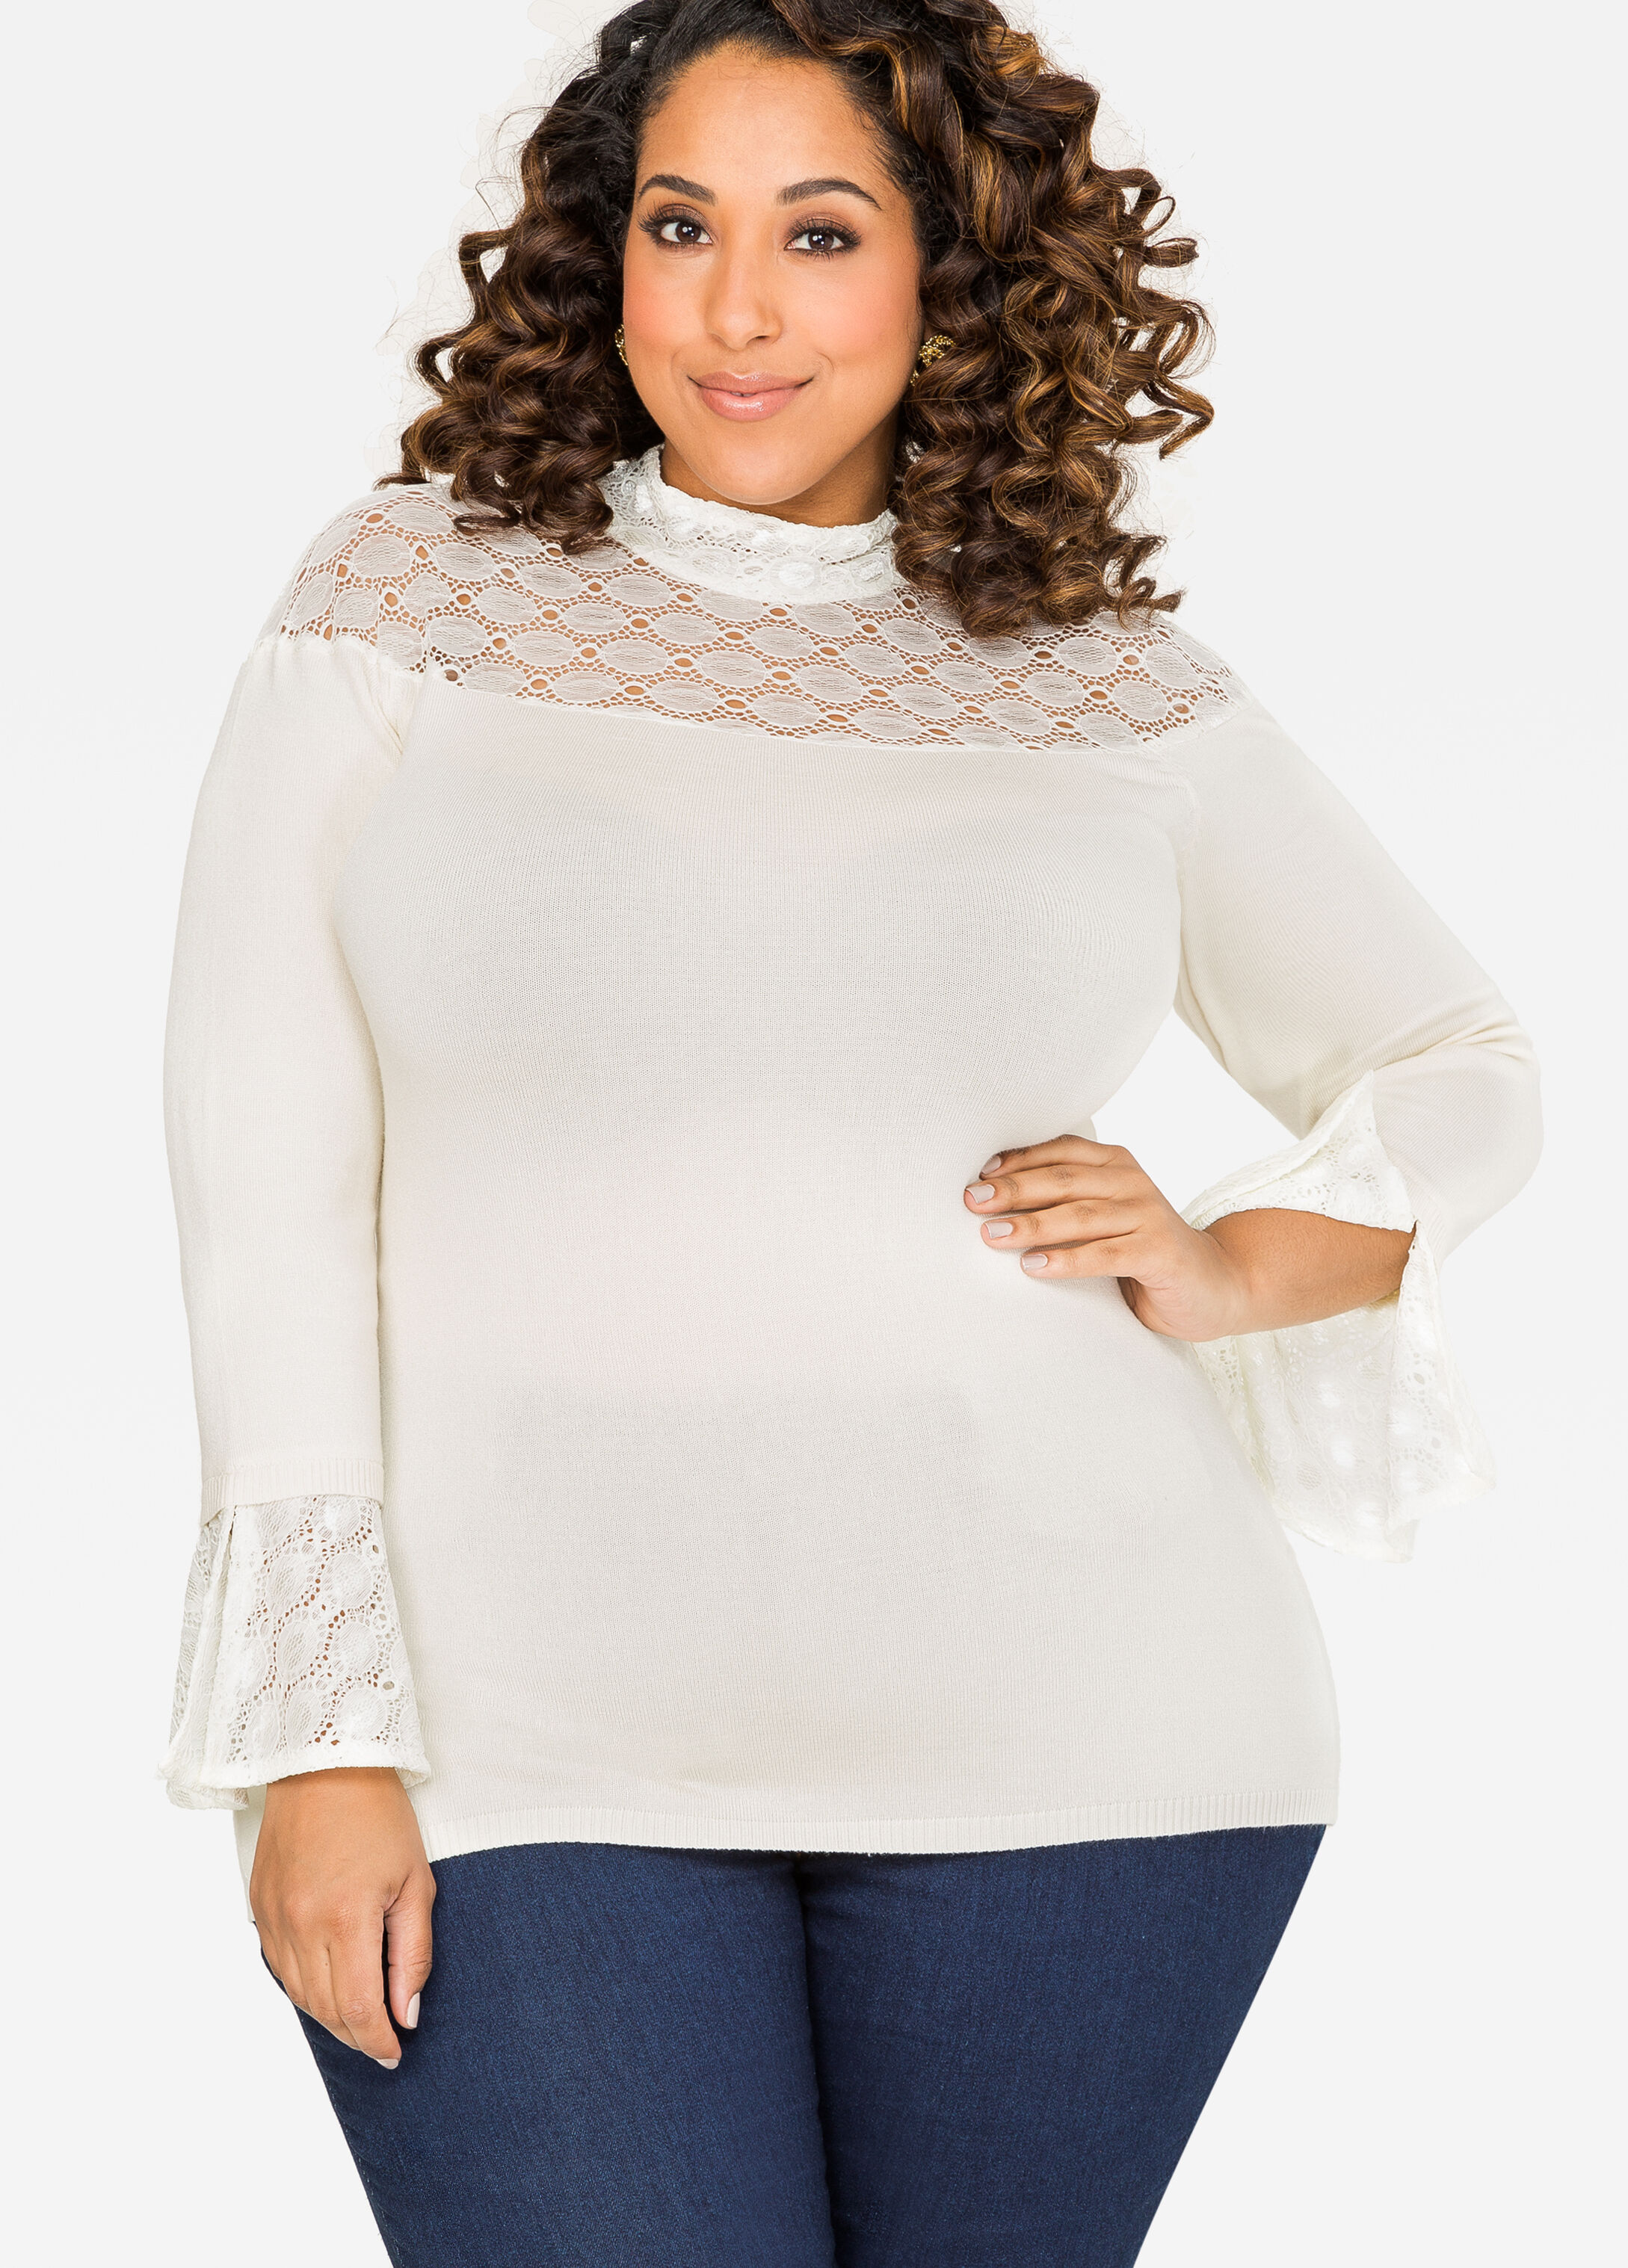 Crochet Lace Mock Neck Sweater Egg Nog - Clearance